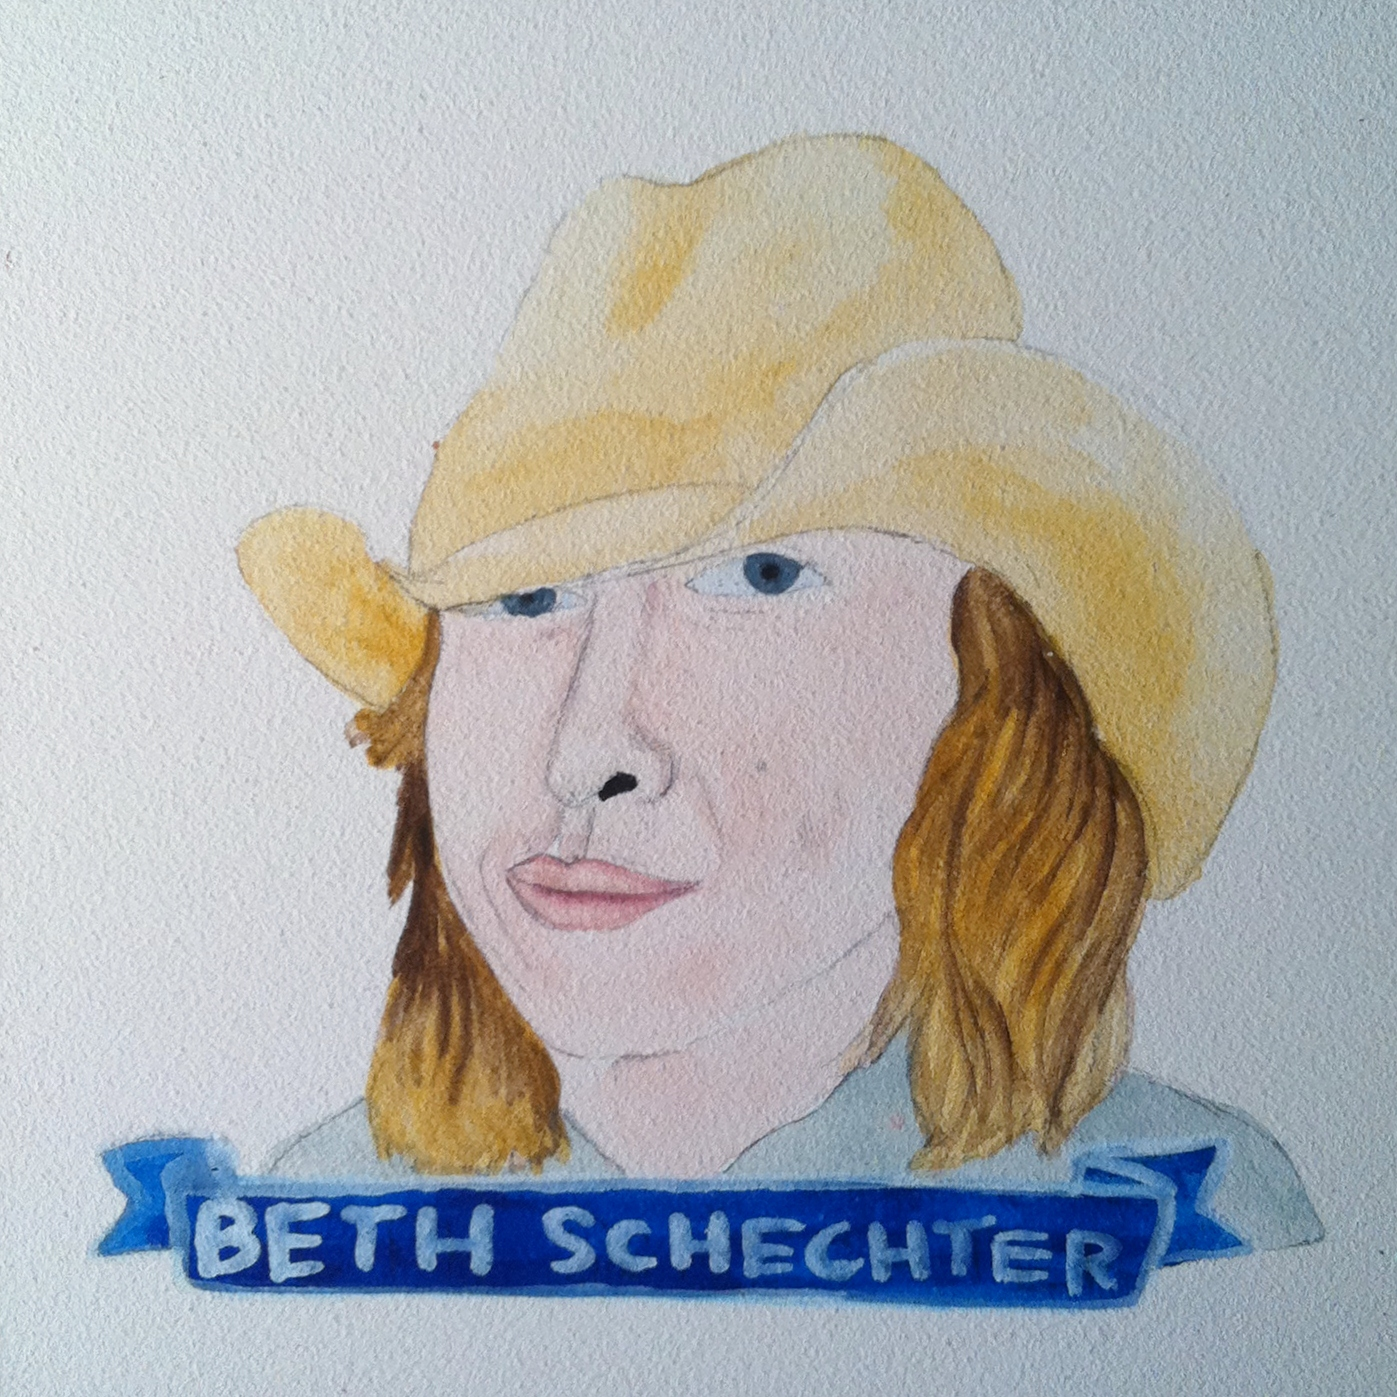 Talent Loves Company at Barbara Archer Gallery: 365 portraits by Lydia Walls - Beth Schechter